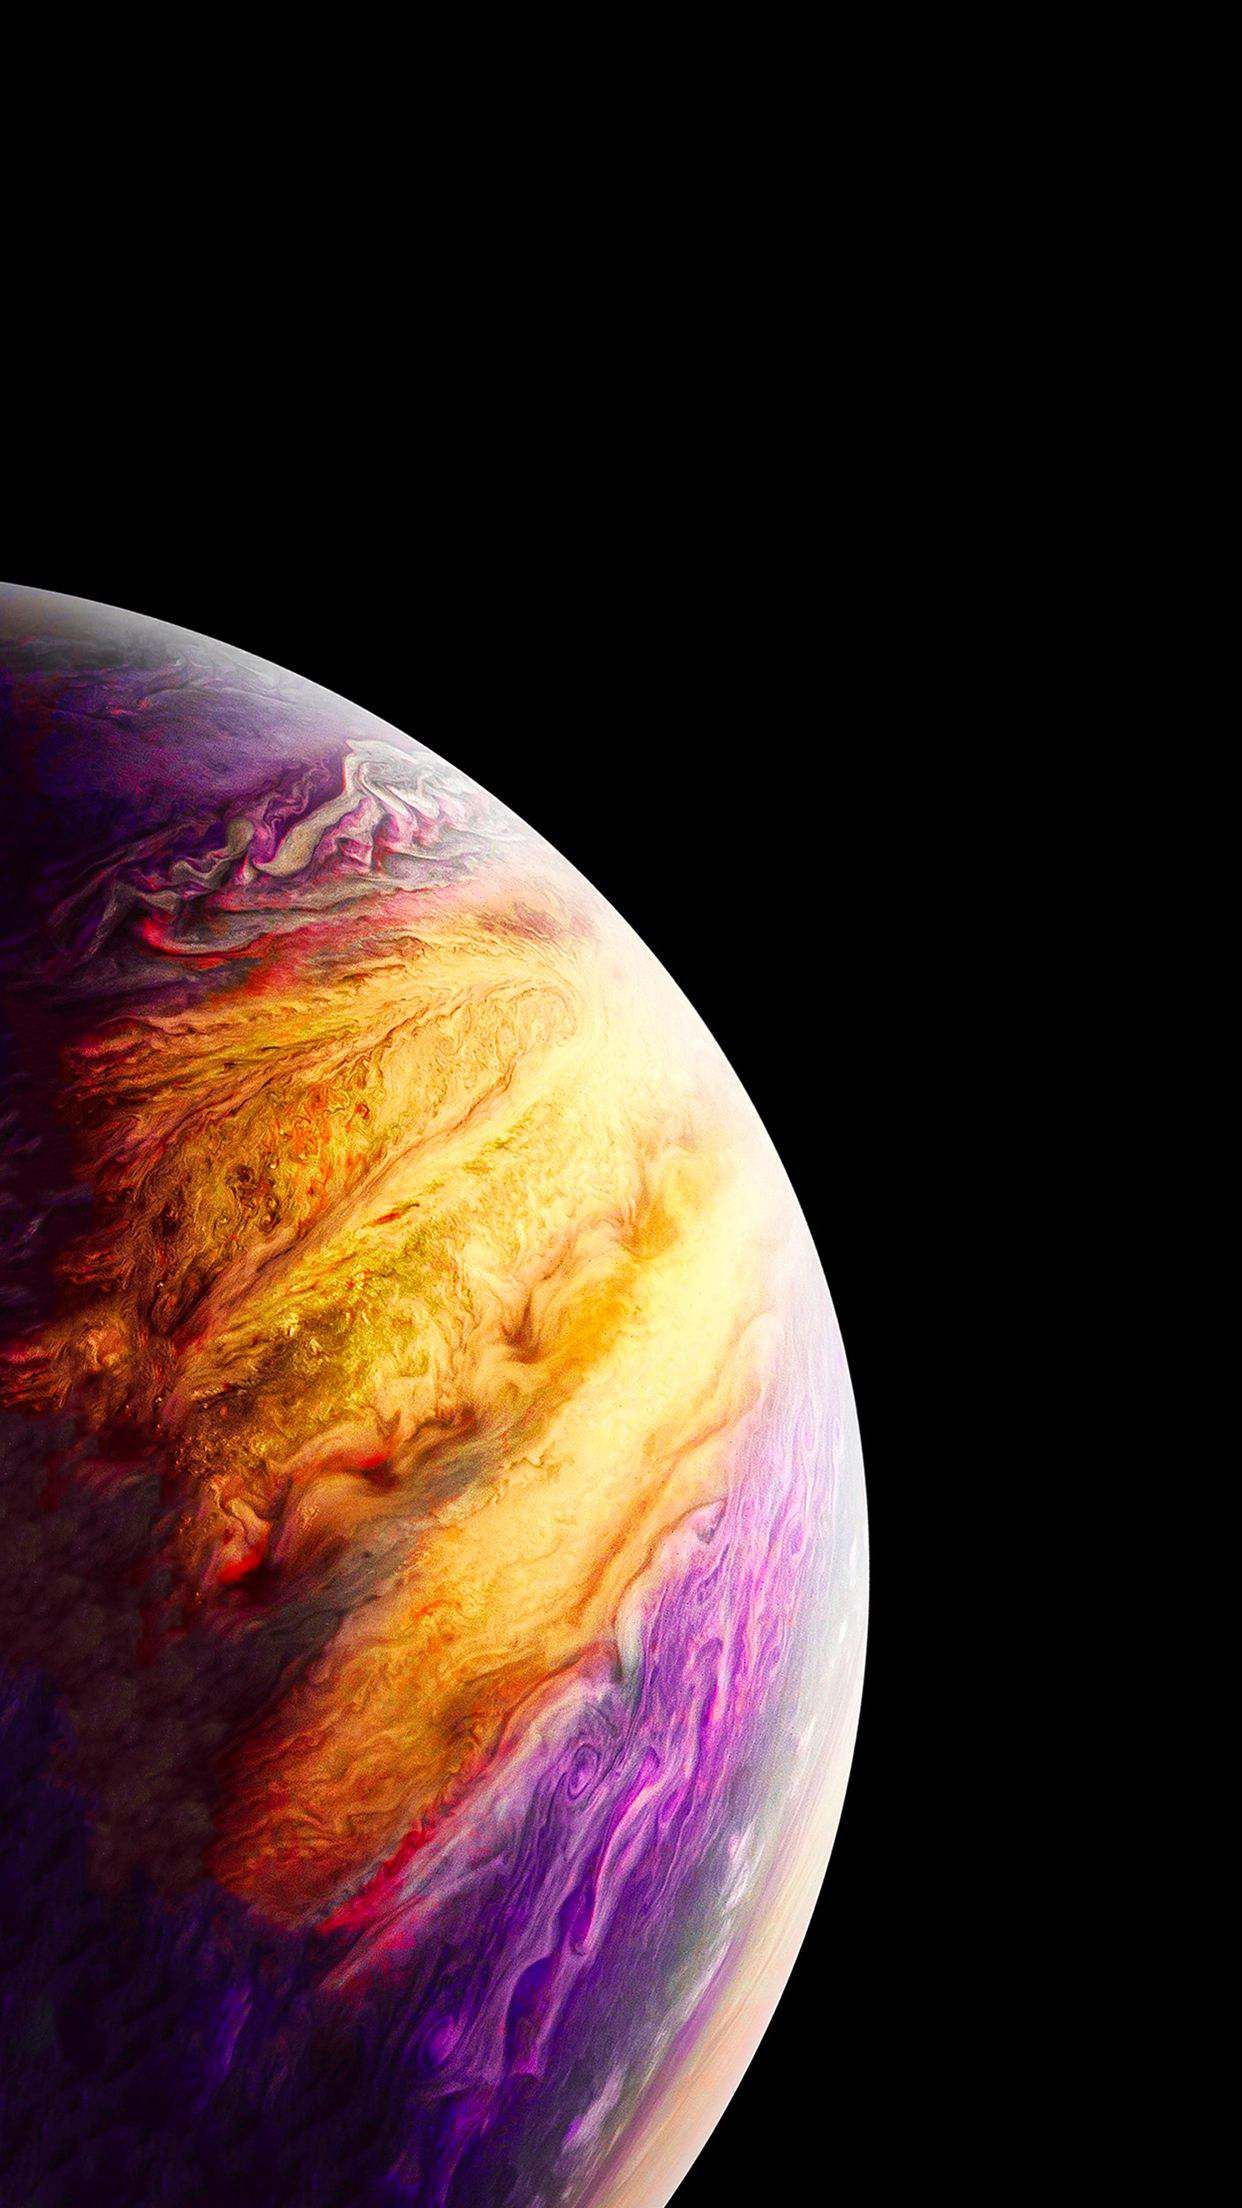 Planet Jupiter Iphone Wallpaper Iphone Wallpaper Smartphone Wallpaper Mobile Wallpaper Android